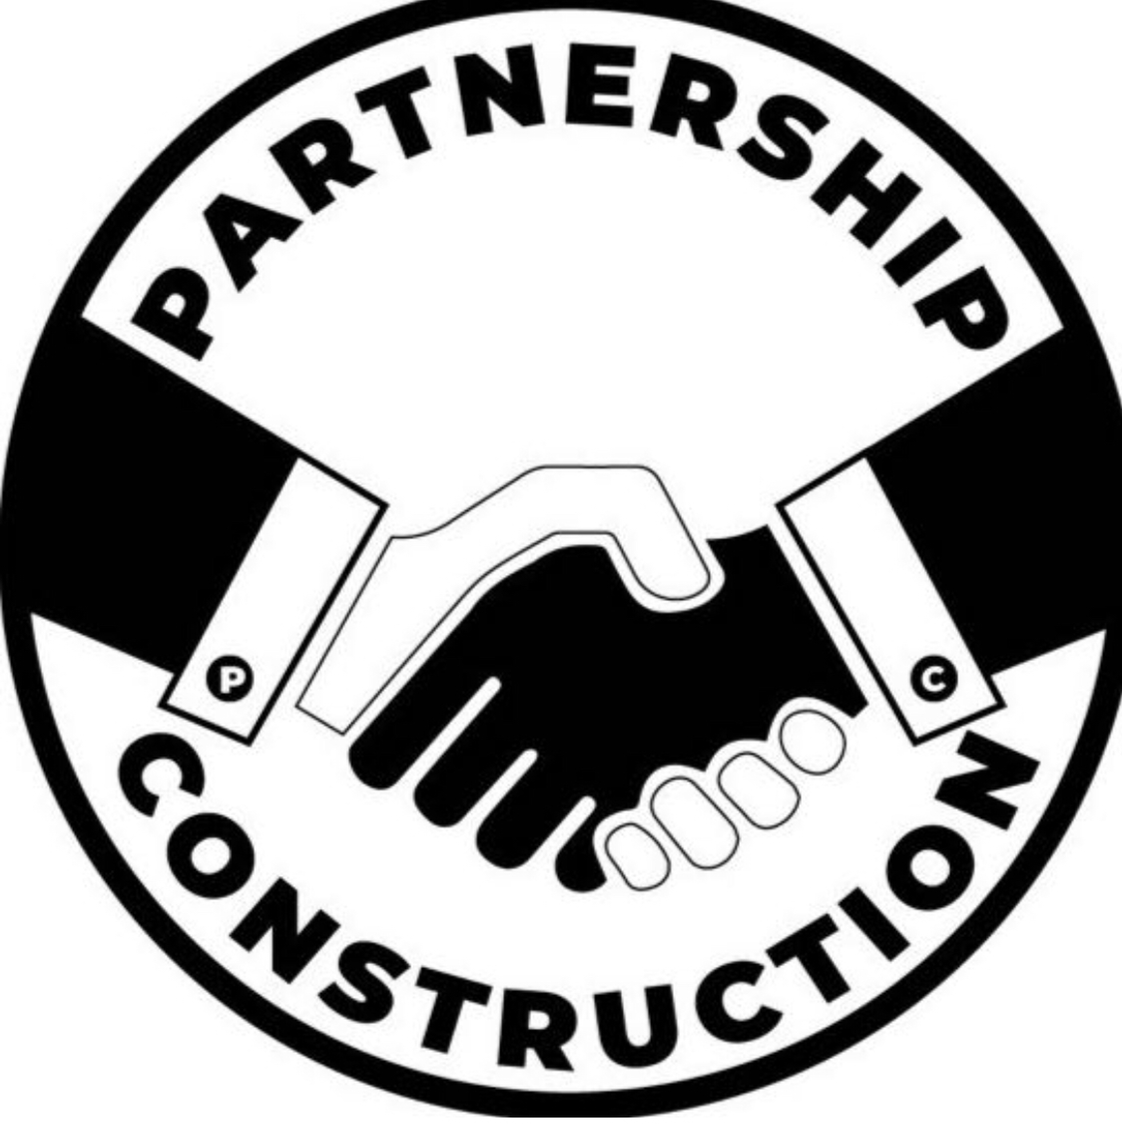 Partnership Construction Ltd